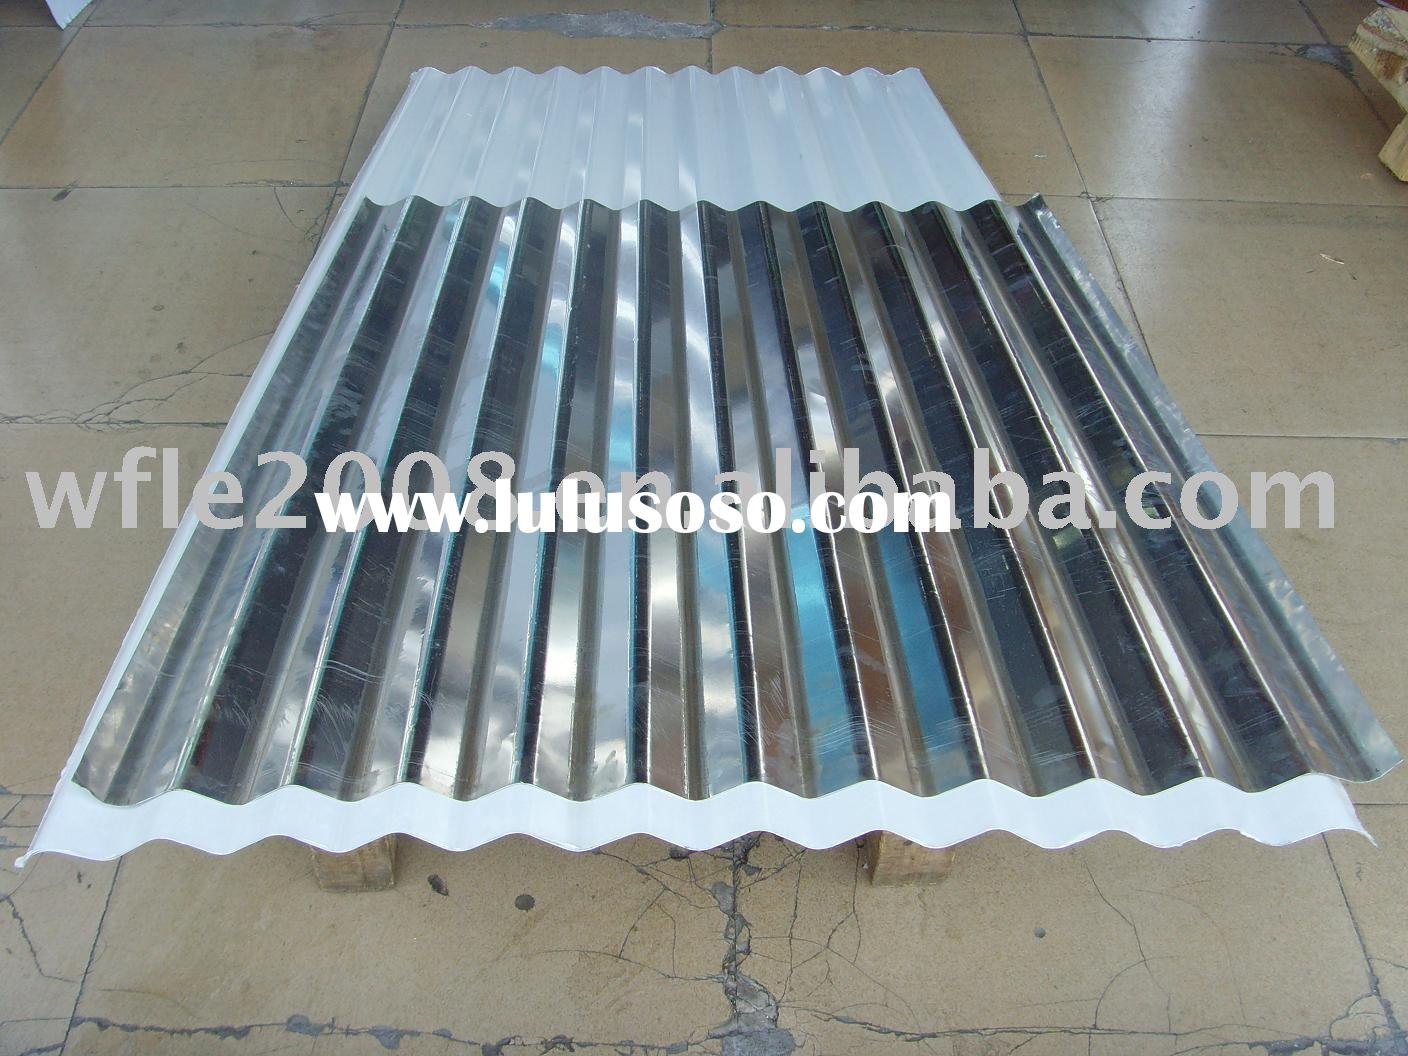 Roof tile:aluminum/galvanized(zinc coating)/steel/glazed/FRP roof tile